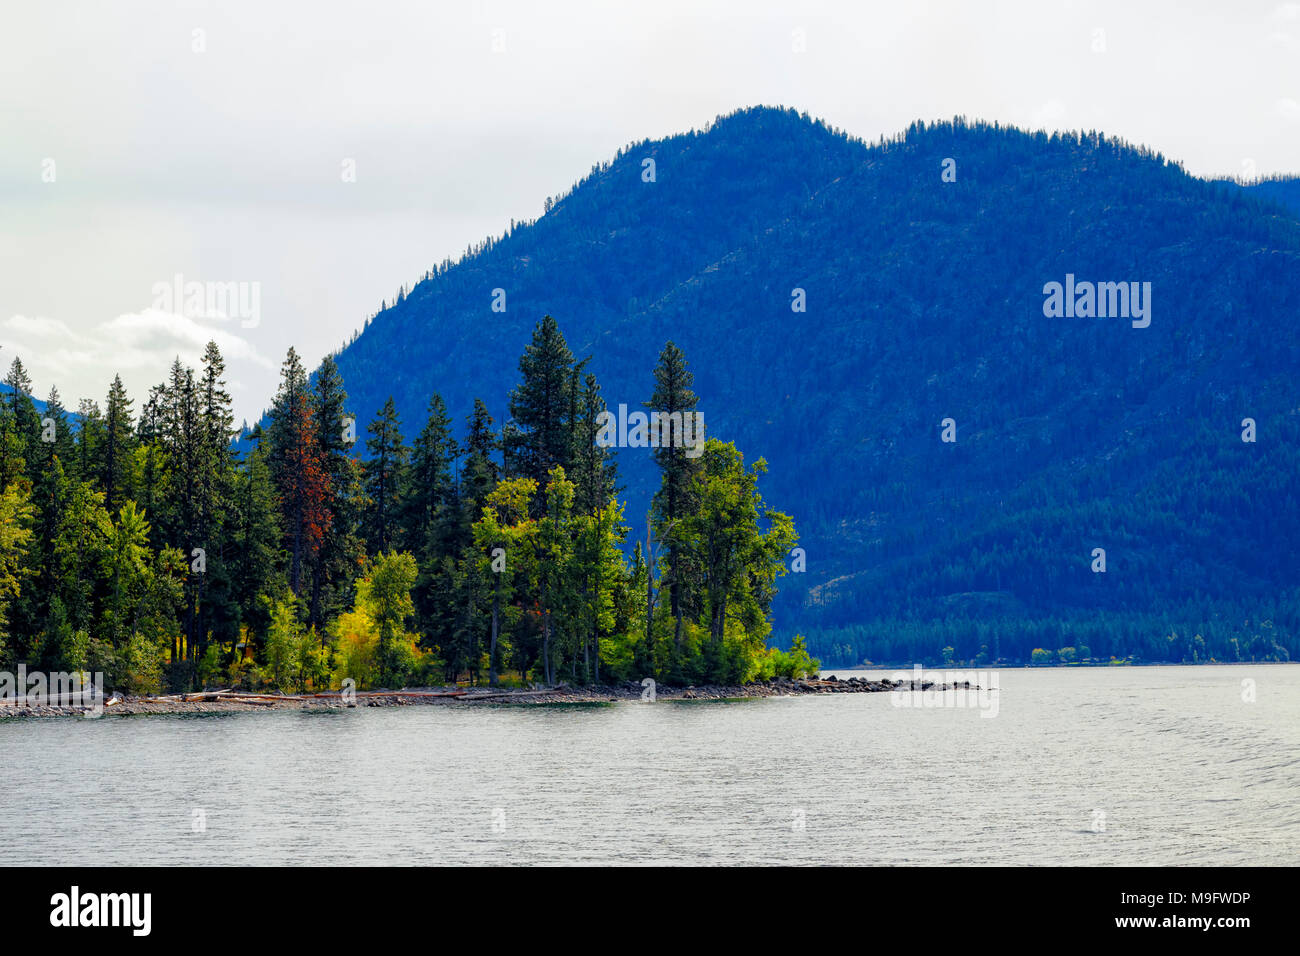 41,926.03563 conifer forest, deciduous tree fall color on narrow flat peninsula jutting out into Lake Chelan, Washington, mountains in the background - Stock Image